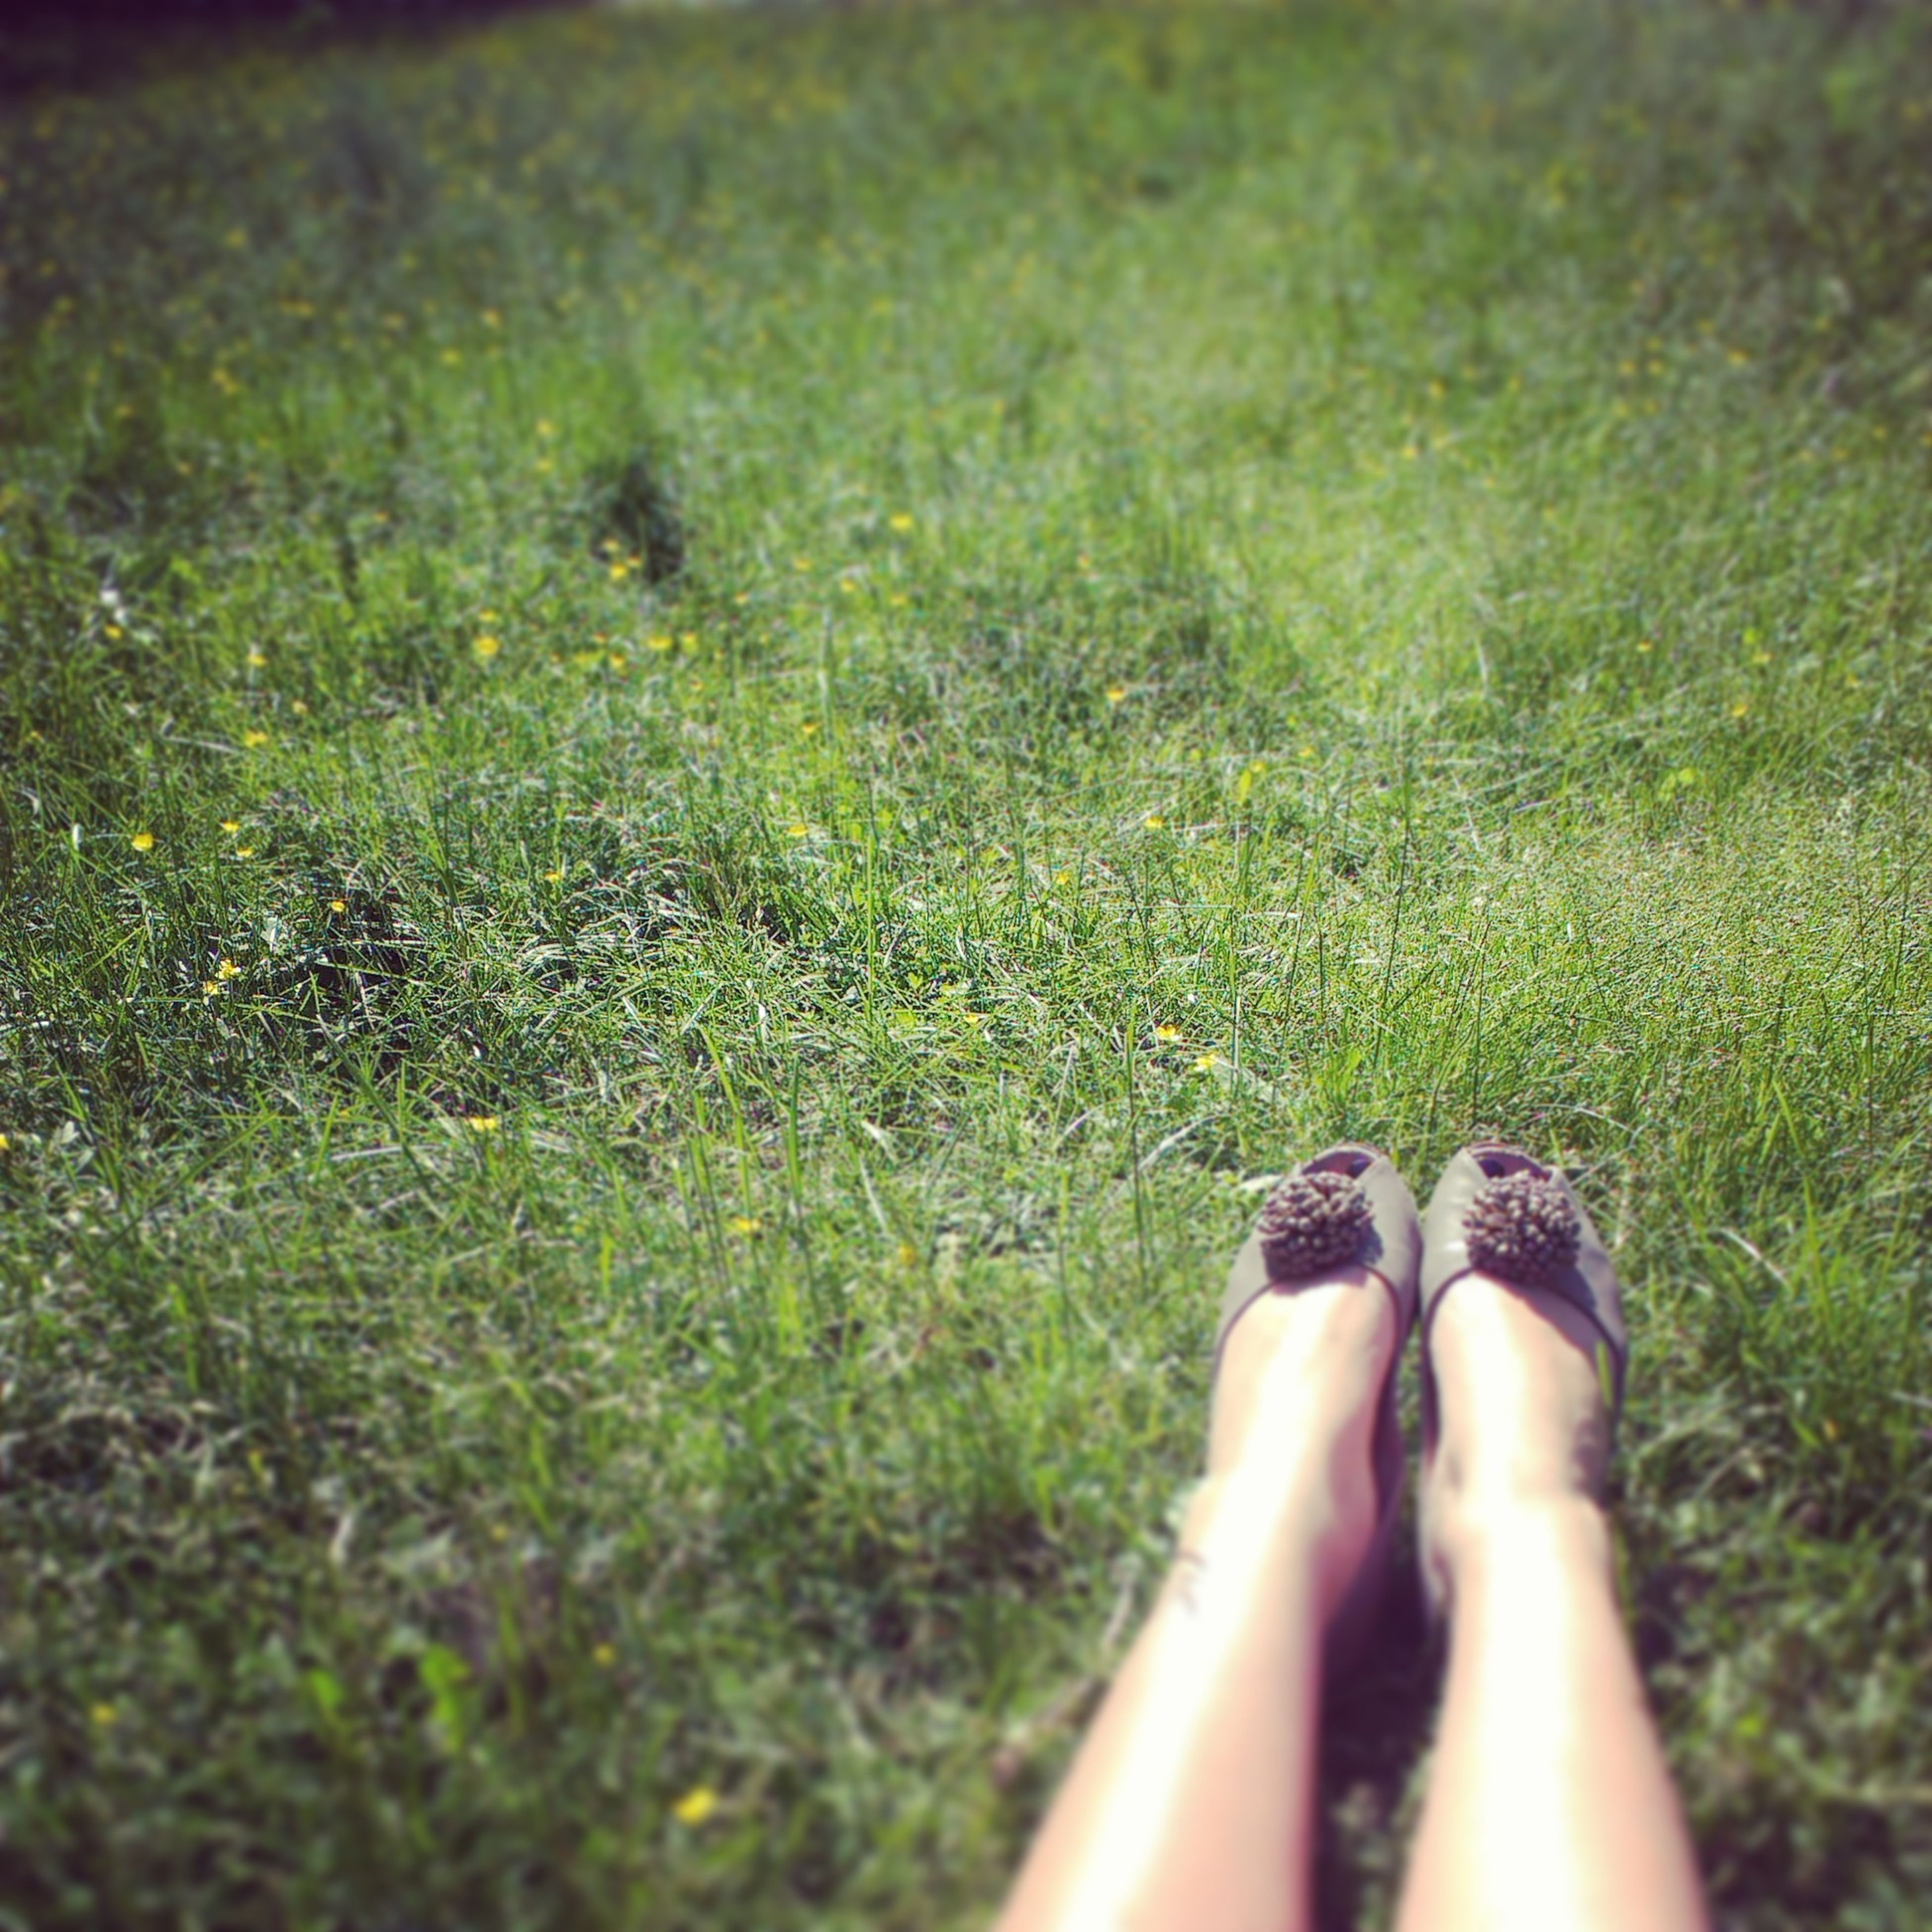 low section, person, personal perspective, grass, shoe, human foot, lifestyles, grassy, field, leisure activity, footwear, standing, part of, unrecognizable person, men, green color